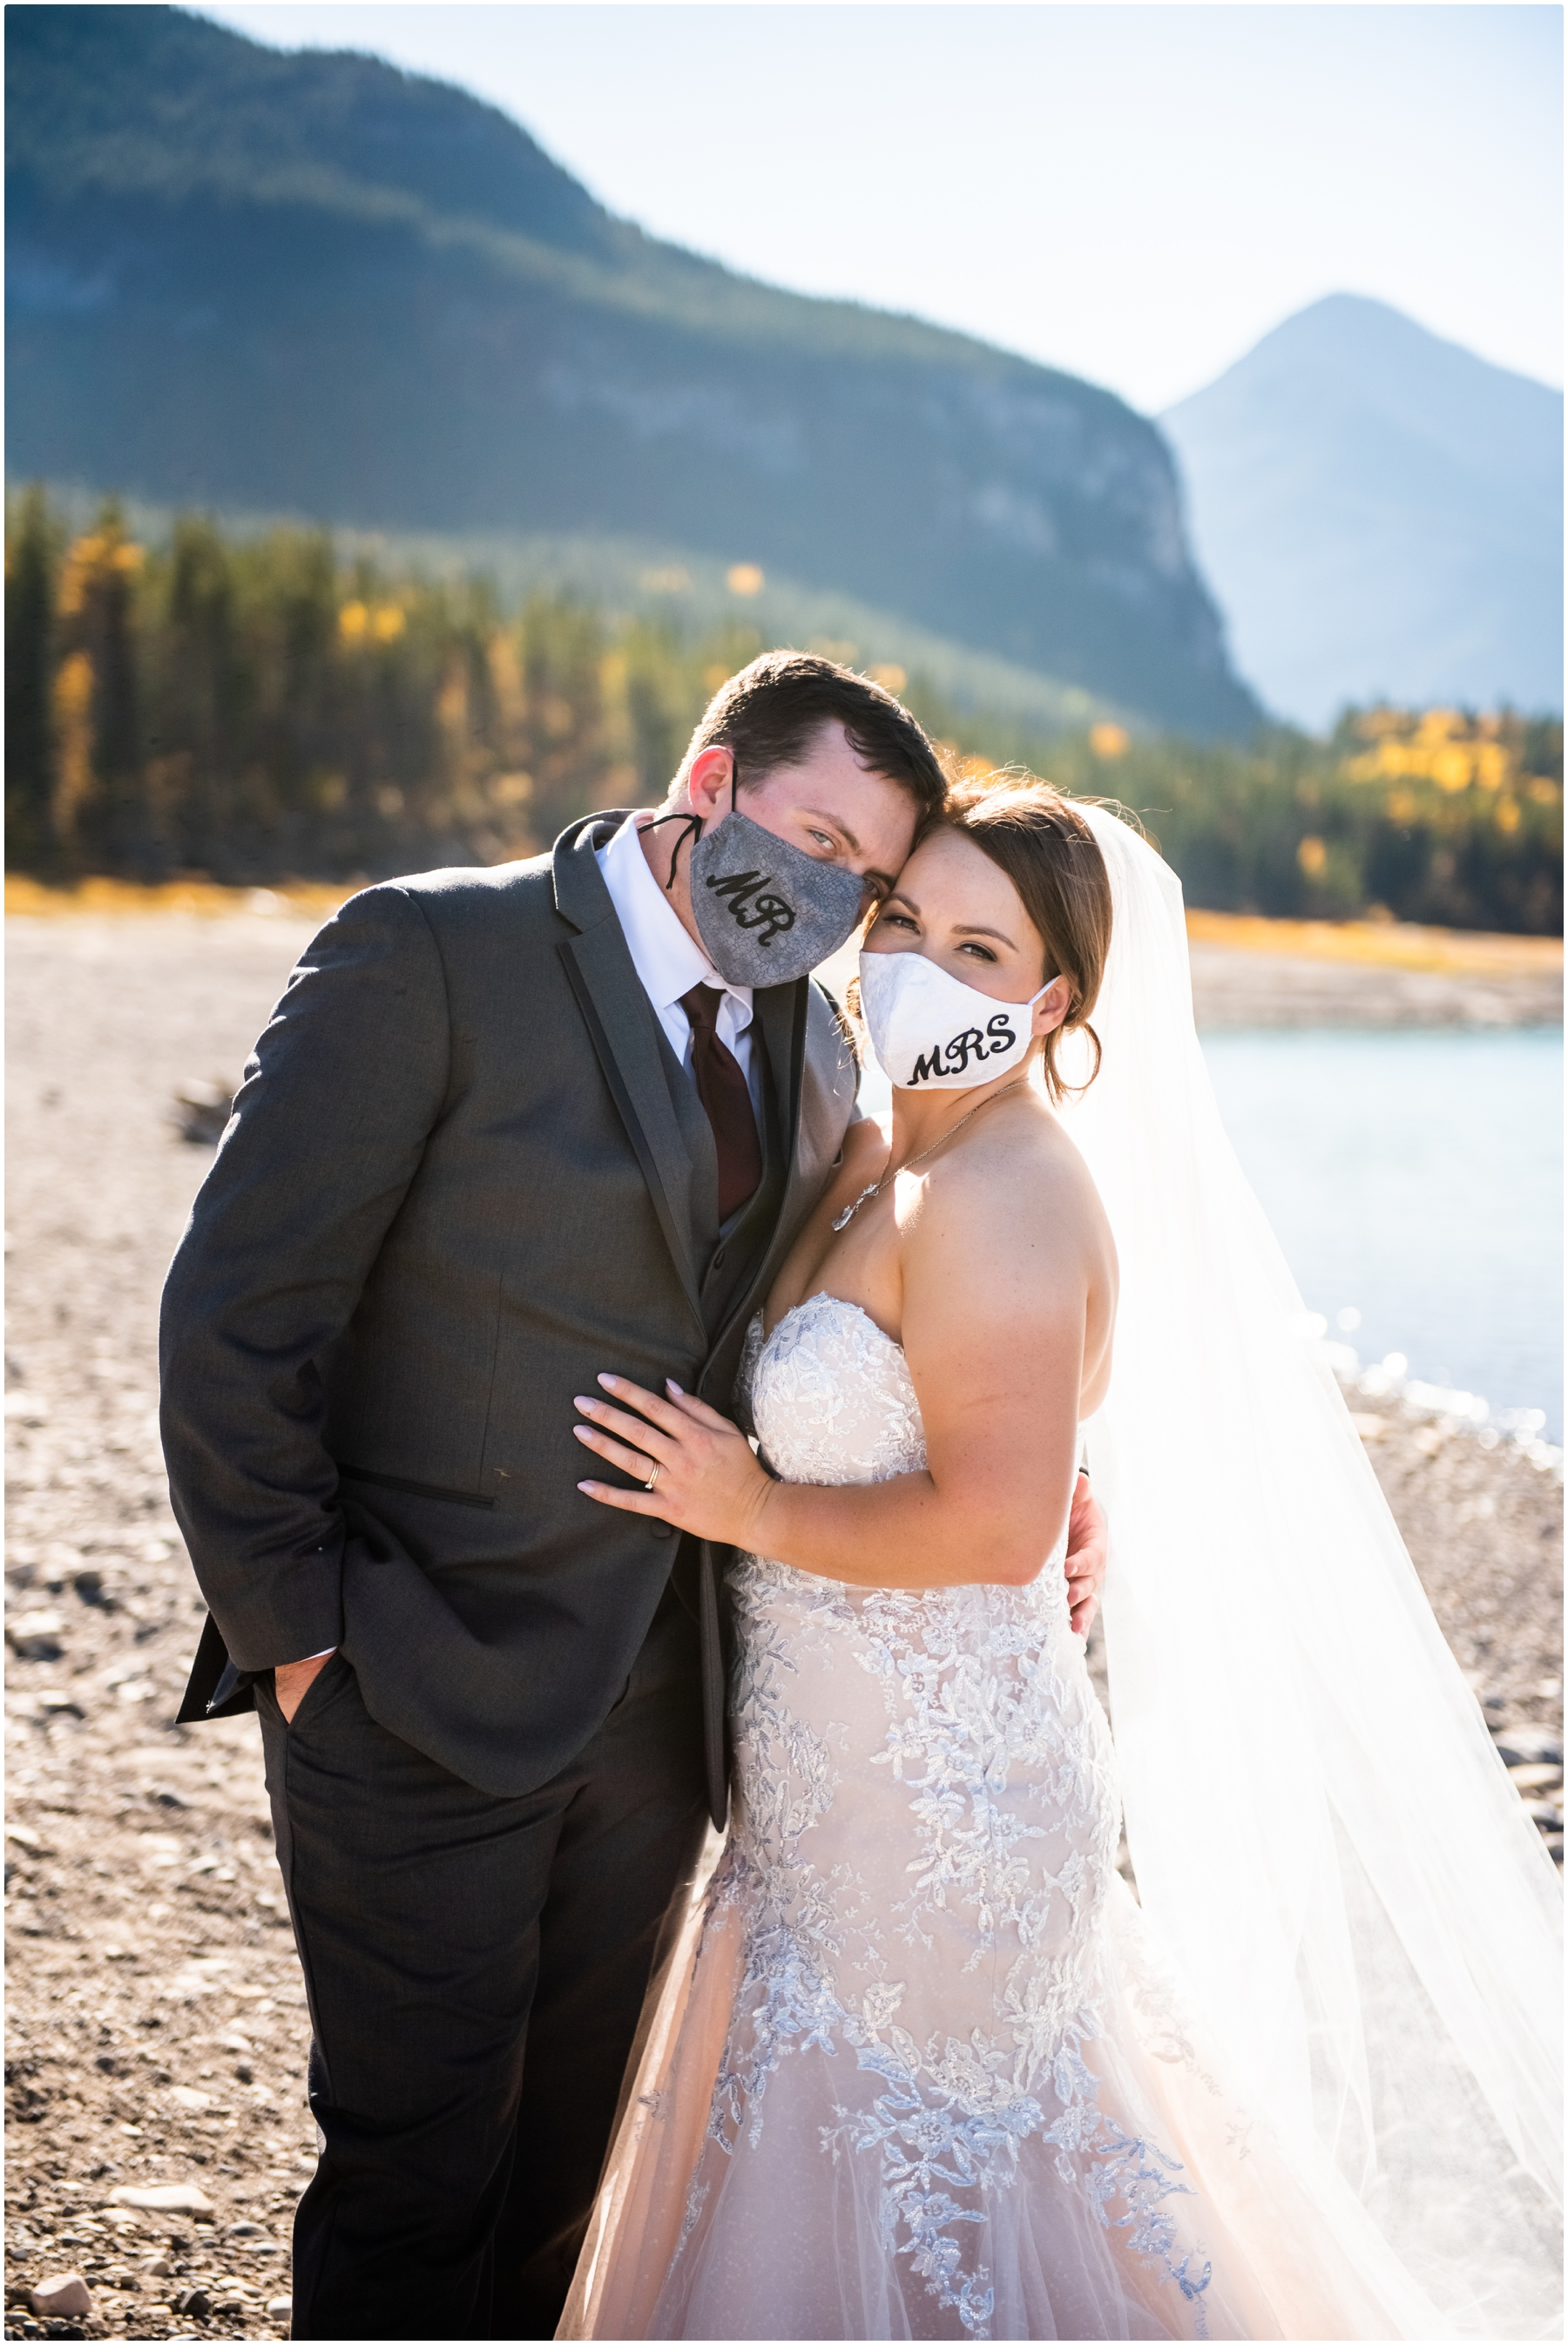 Canmore Wedding Photographer- Rocky Mountain Intimate Elopement Photography